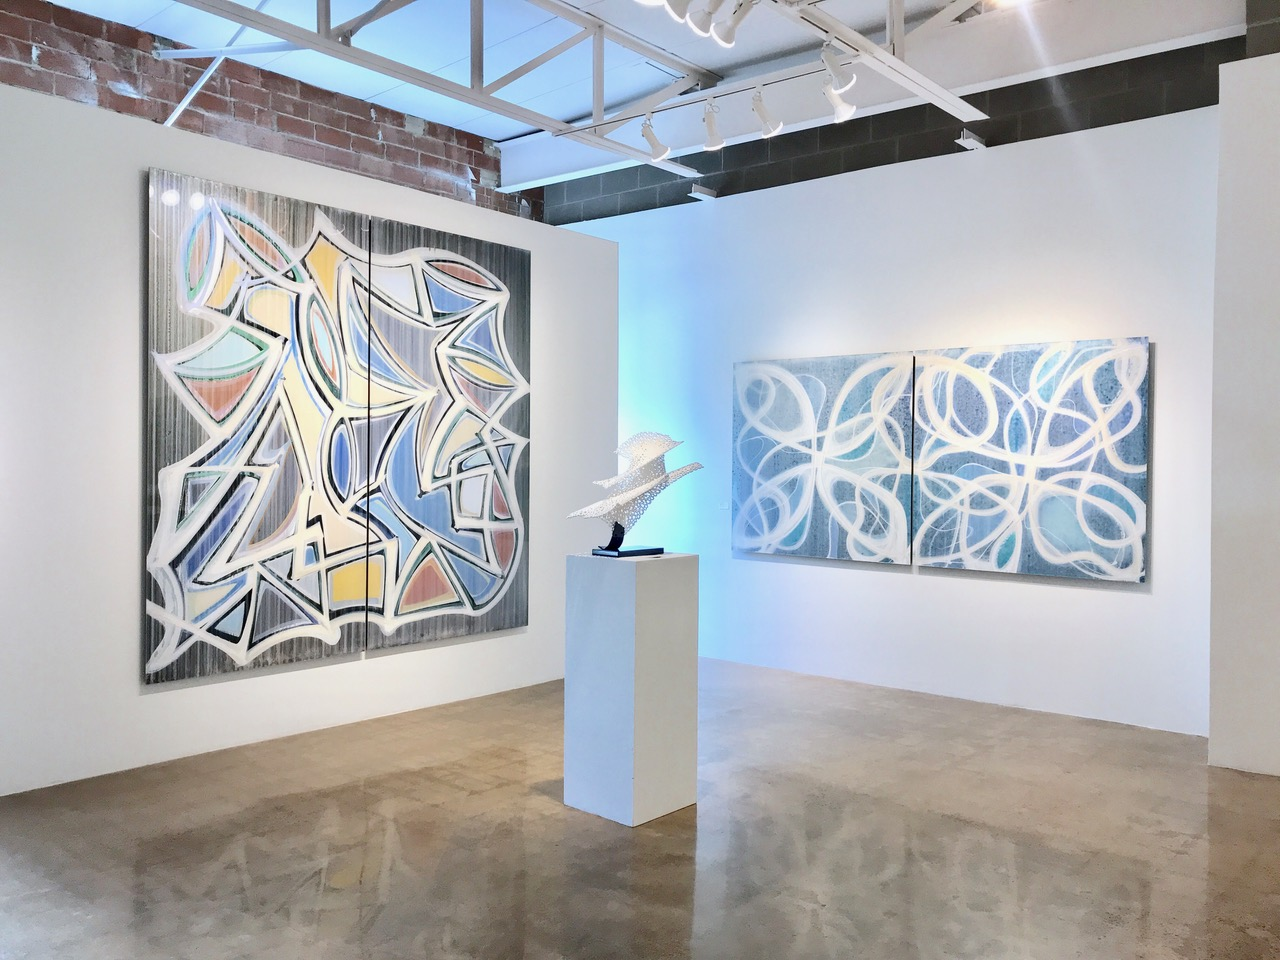 9/20/18 - DALLAS | Third Thursday Gallery Walk | 5-8 pmPlease join us from 5:00 to 8:00 for cocktails at for a night of art openings at our Dallas gallery and our gallery neighbors: Ferrari Gallery, Ginger Fox Gallery, Joel Cooner Gallery and the Lawley Art Group.